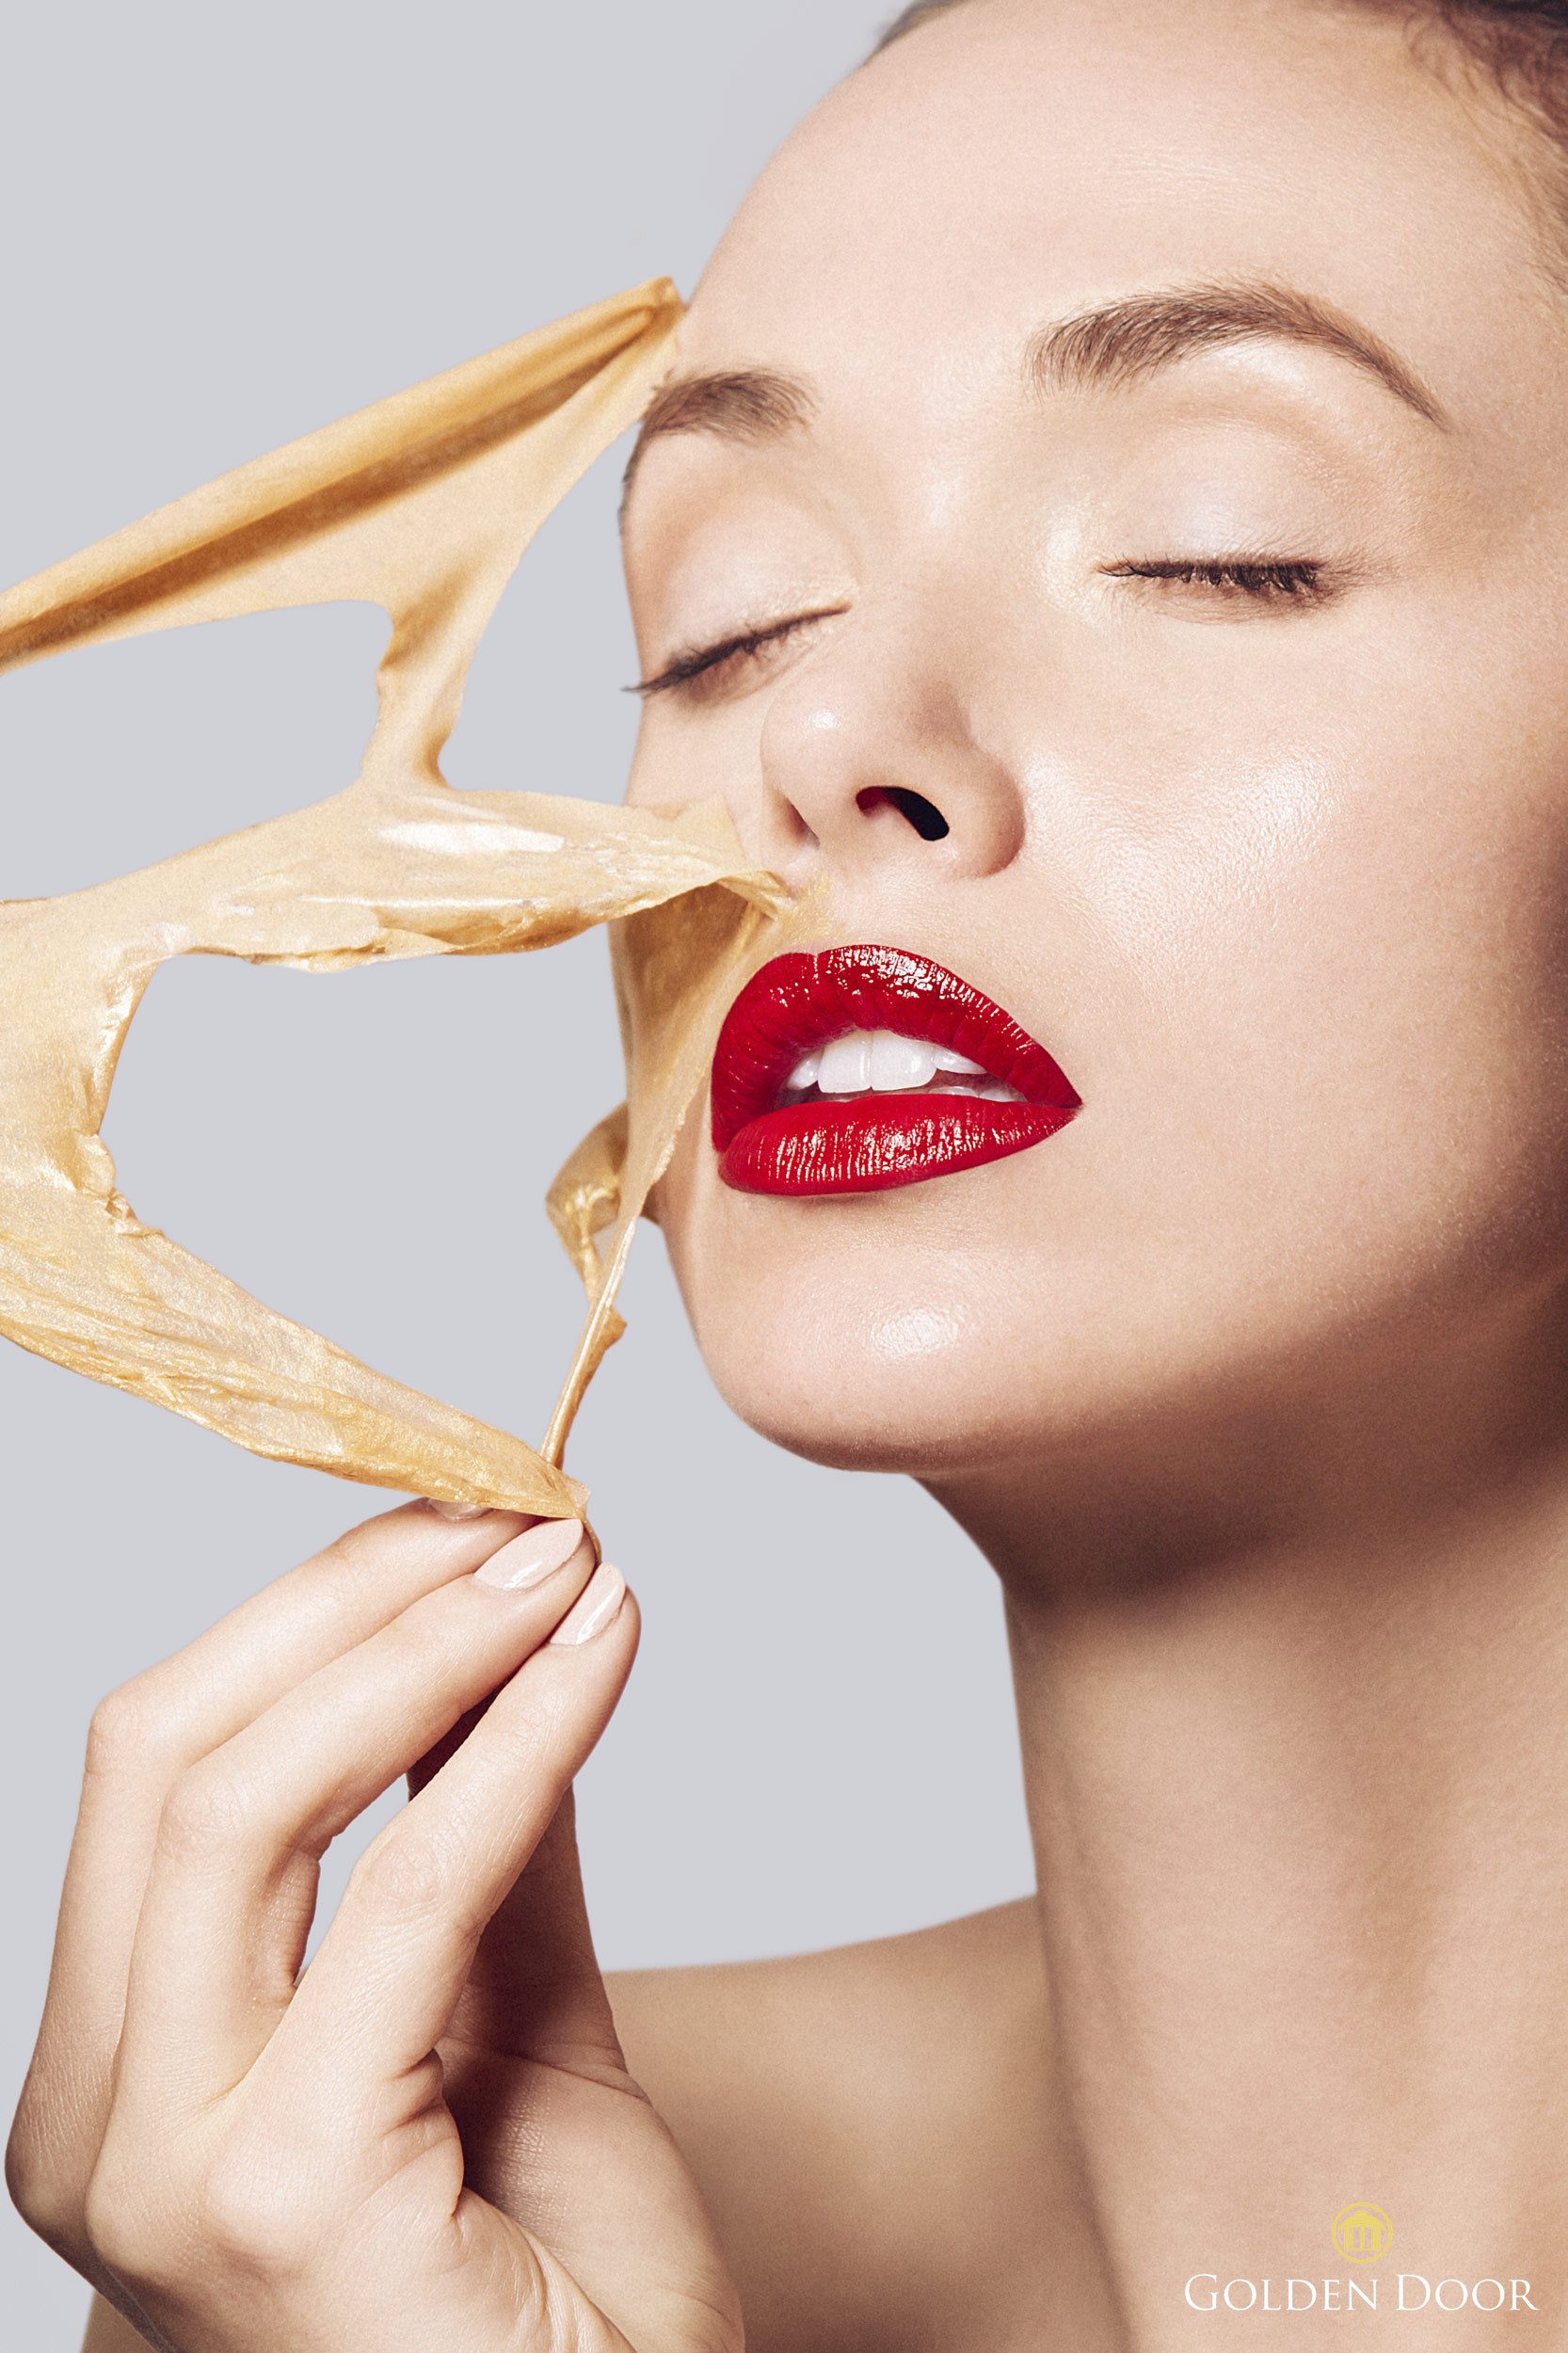 Girl wearing red lipstick peels off a gold face mask - Kimberly Genevieve Los Angeles Lifestyle Advertising Photographer